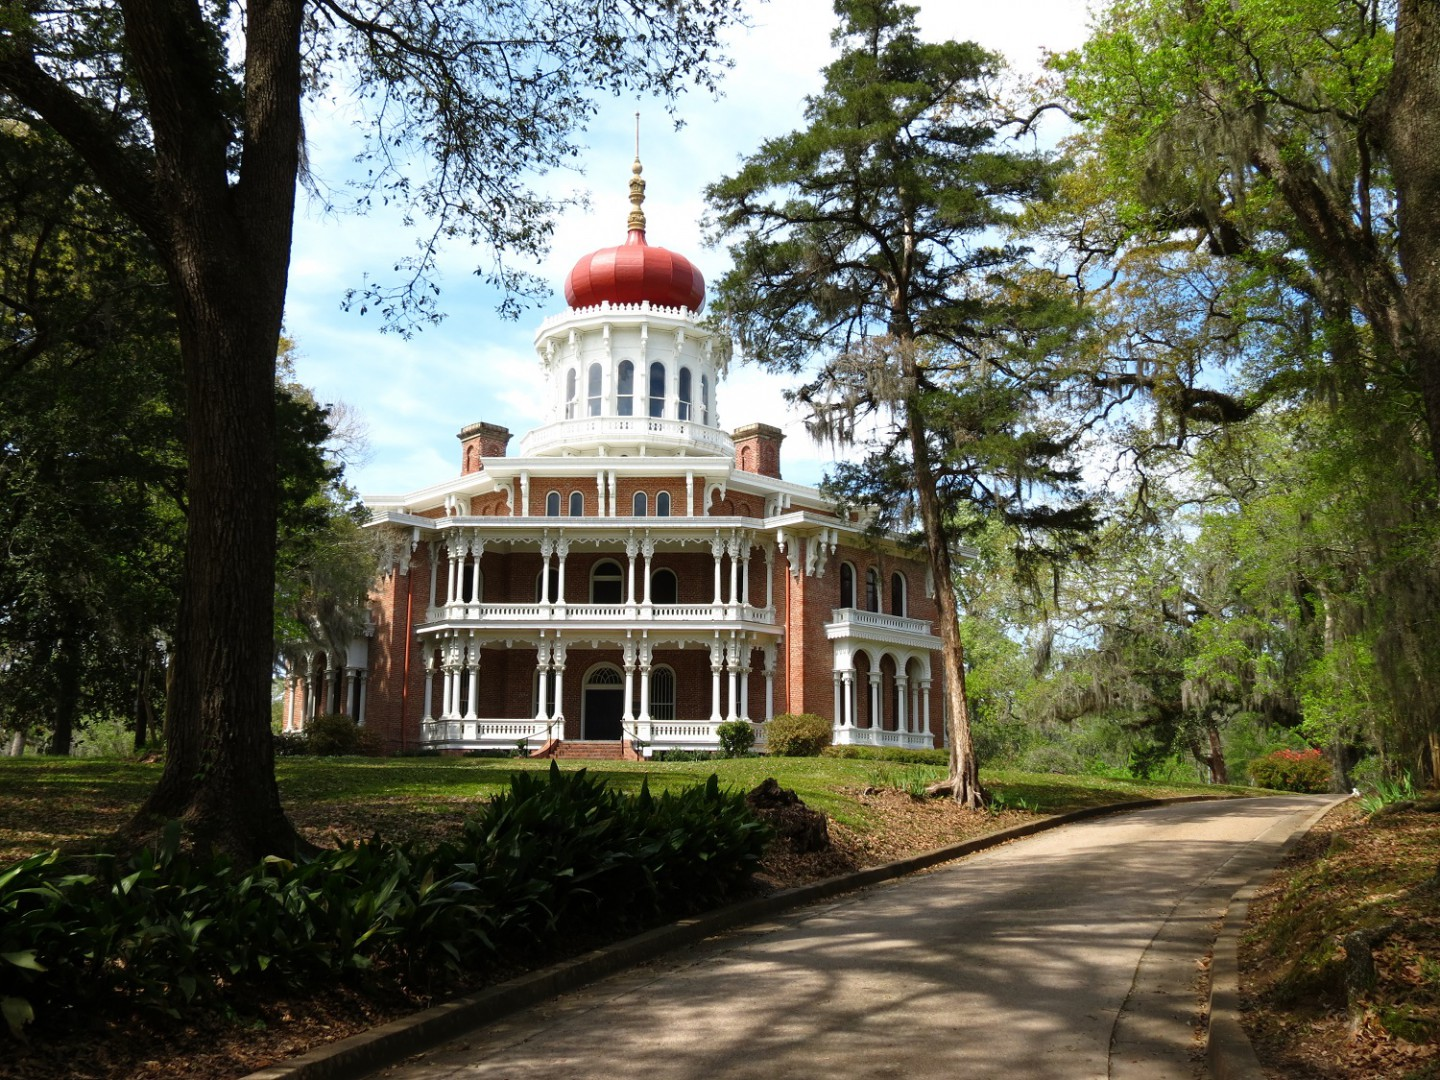 Longwood in Natchez